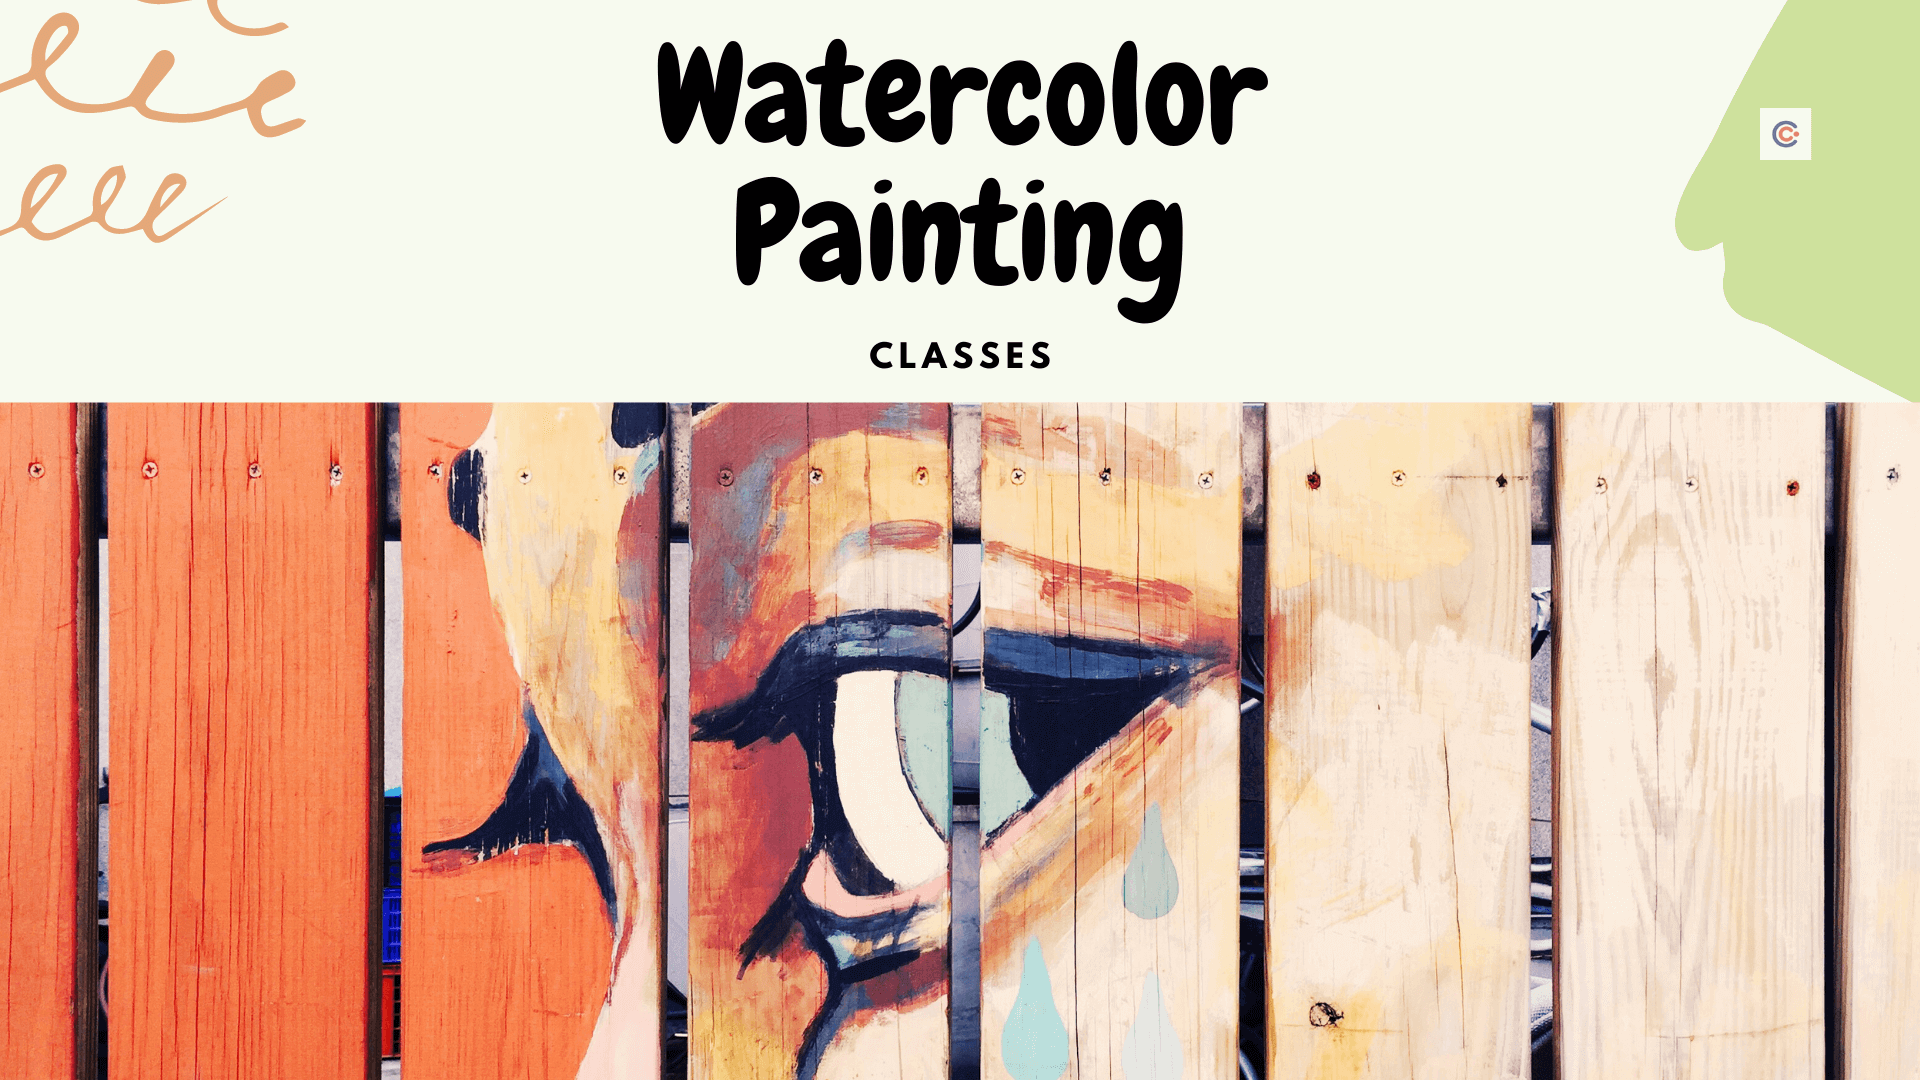 8 Best Watercolor Painting Classes - Learn Watercoloring Online